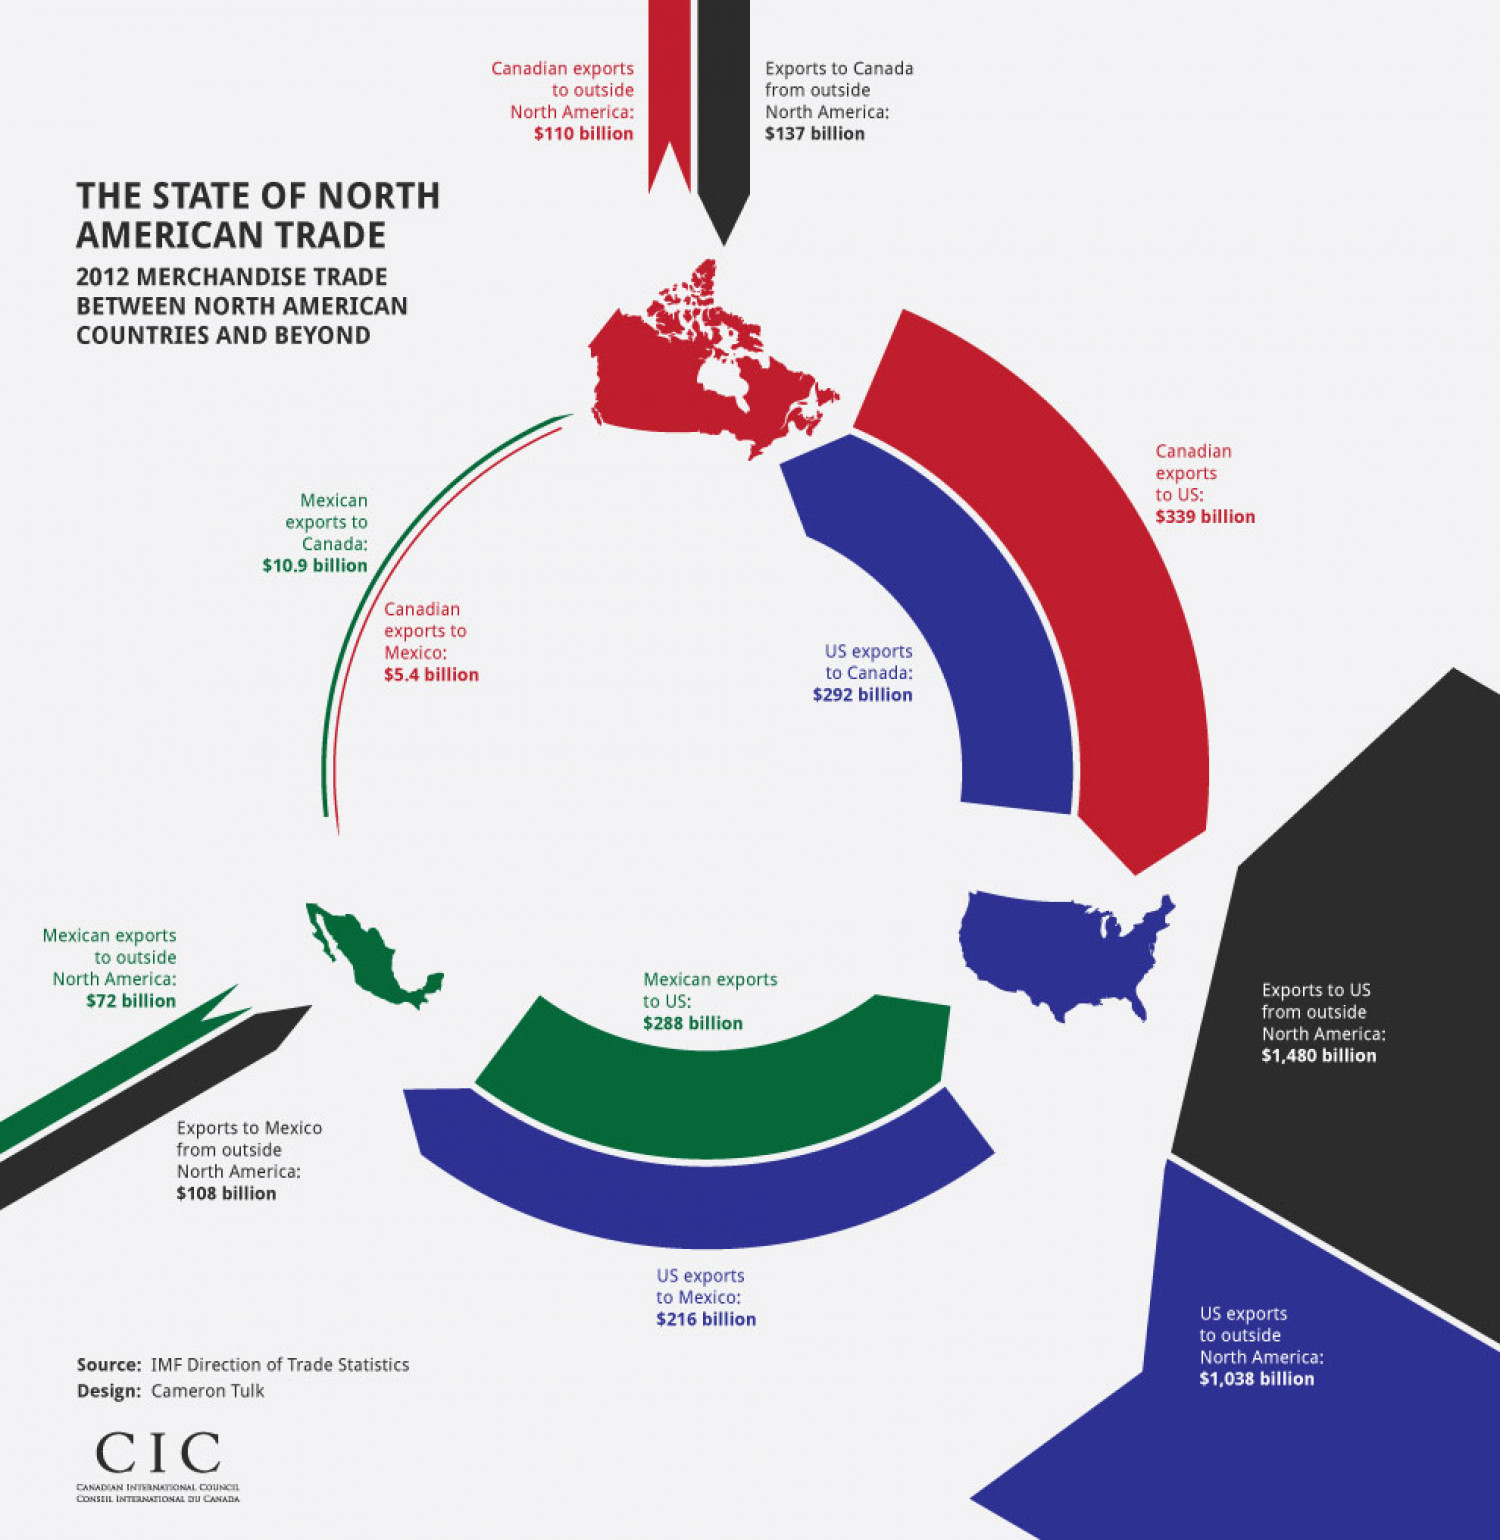 The State of North American Trade Infographic